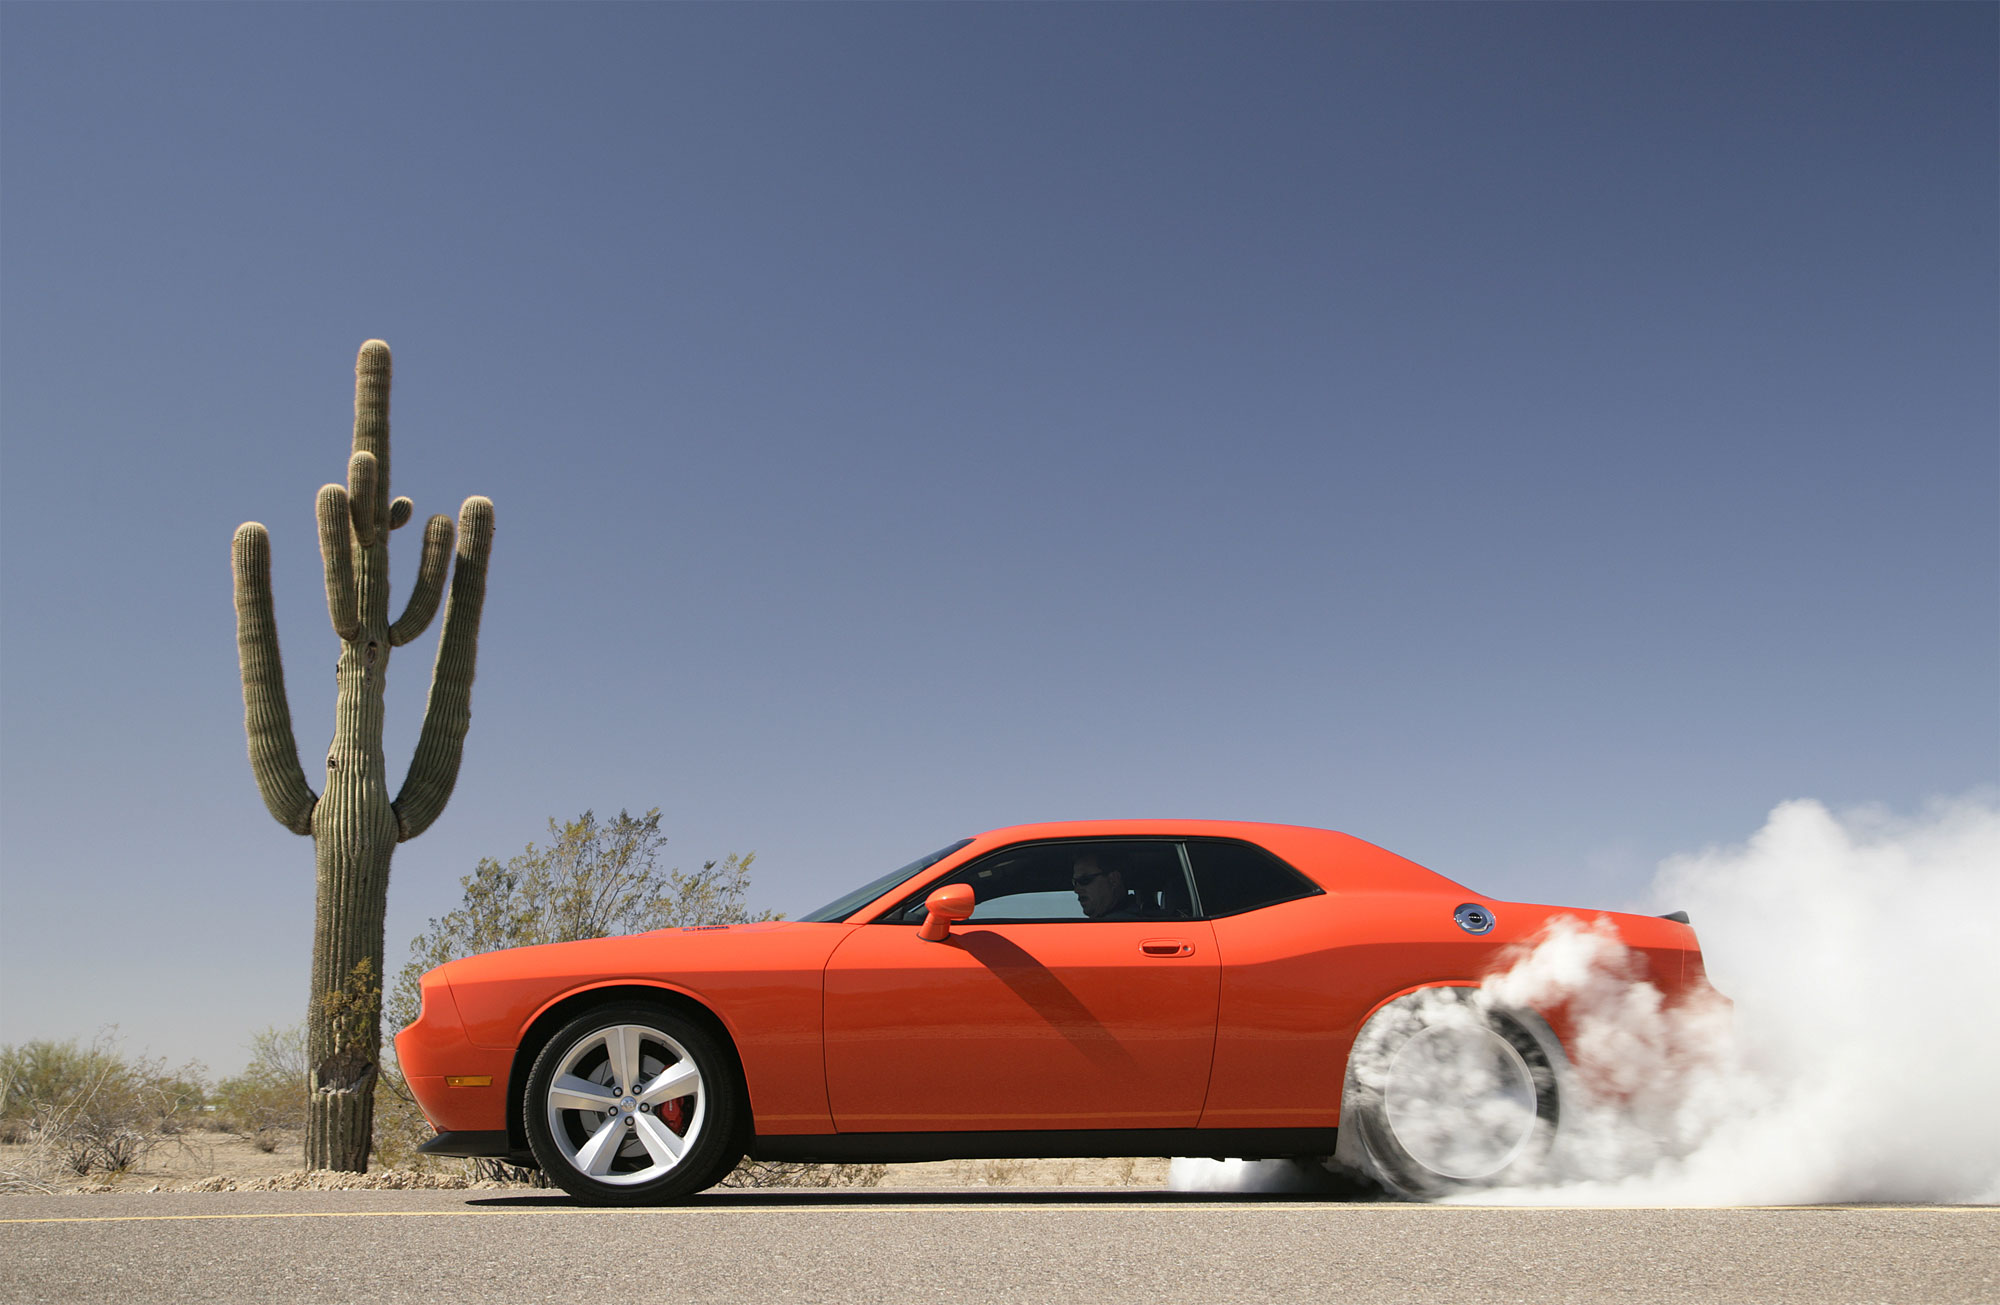 Profile, driver's side, tires smoking, 2008 Dodge Challenger SRT8